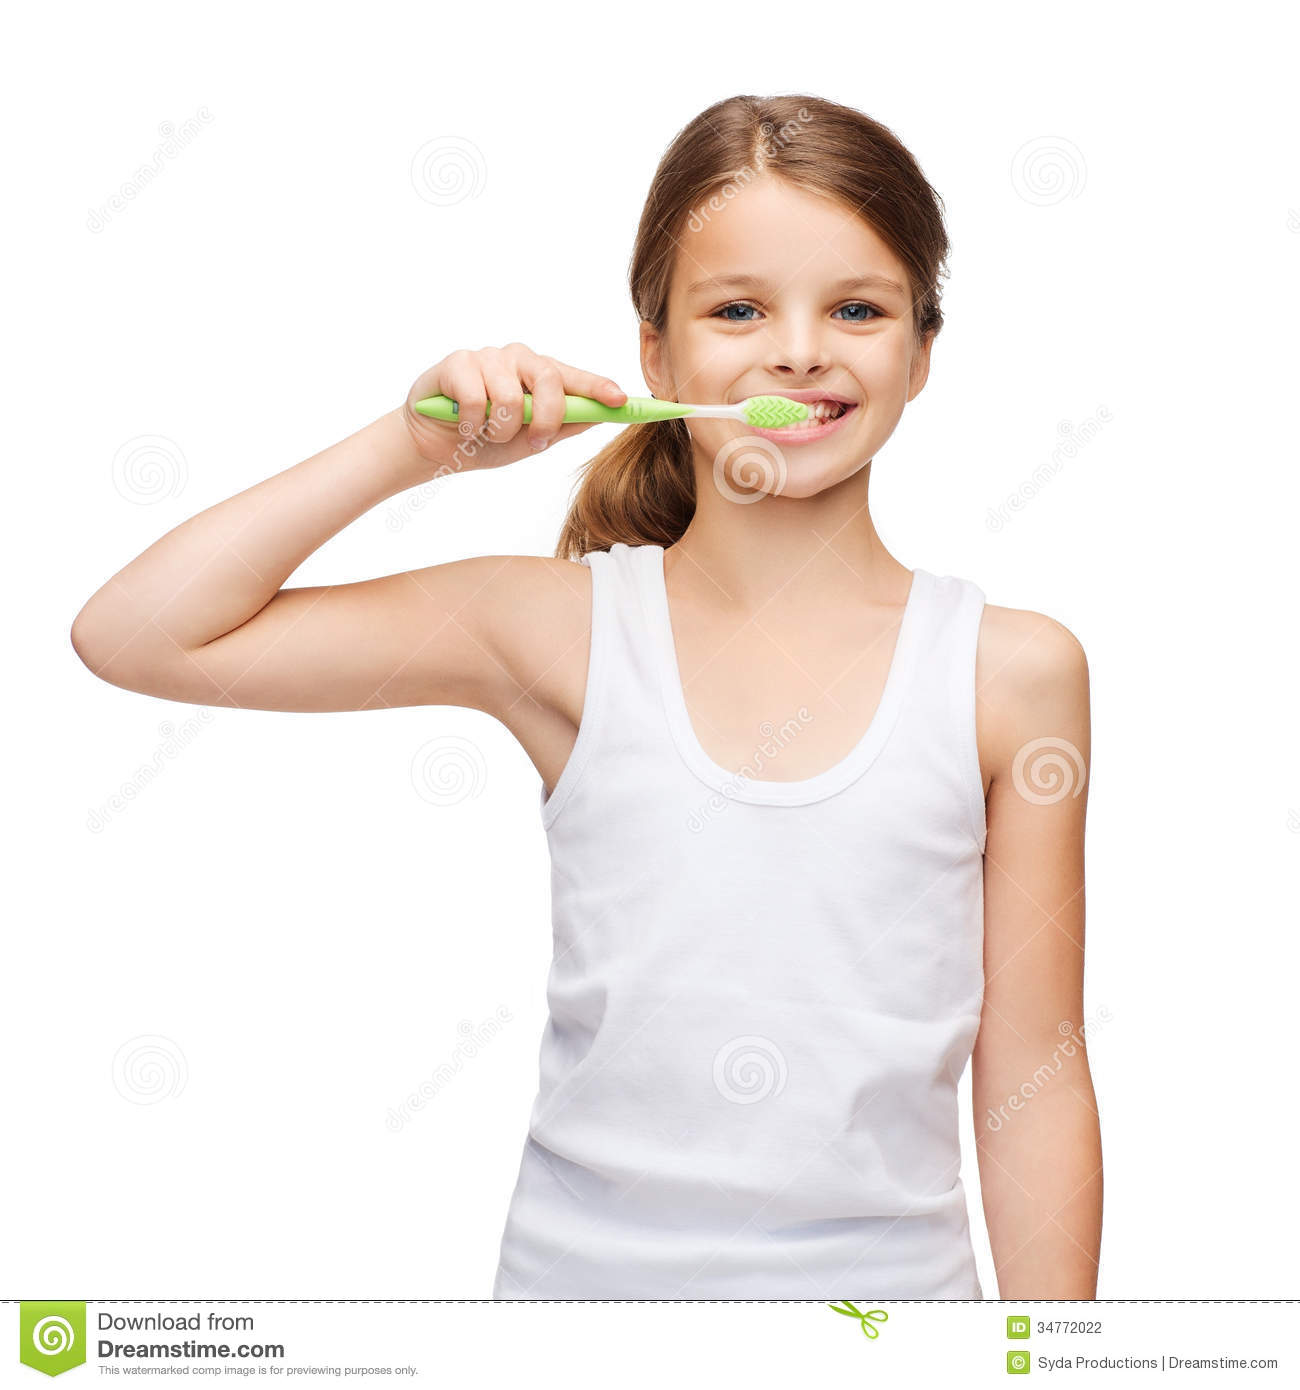 Girl In Blank White Shirt Brushing Her Teeth Stock Photo -7452